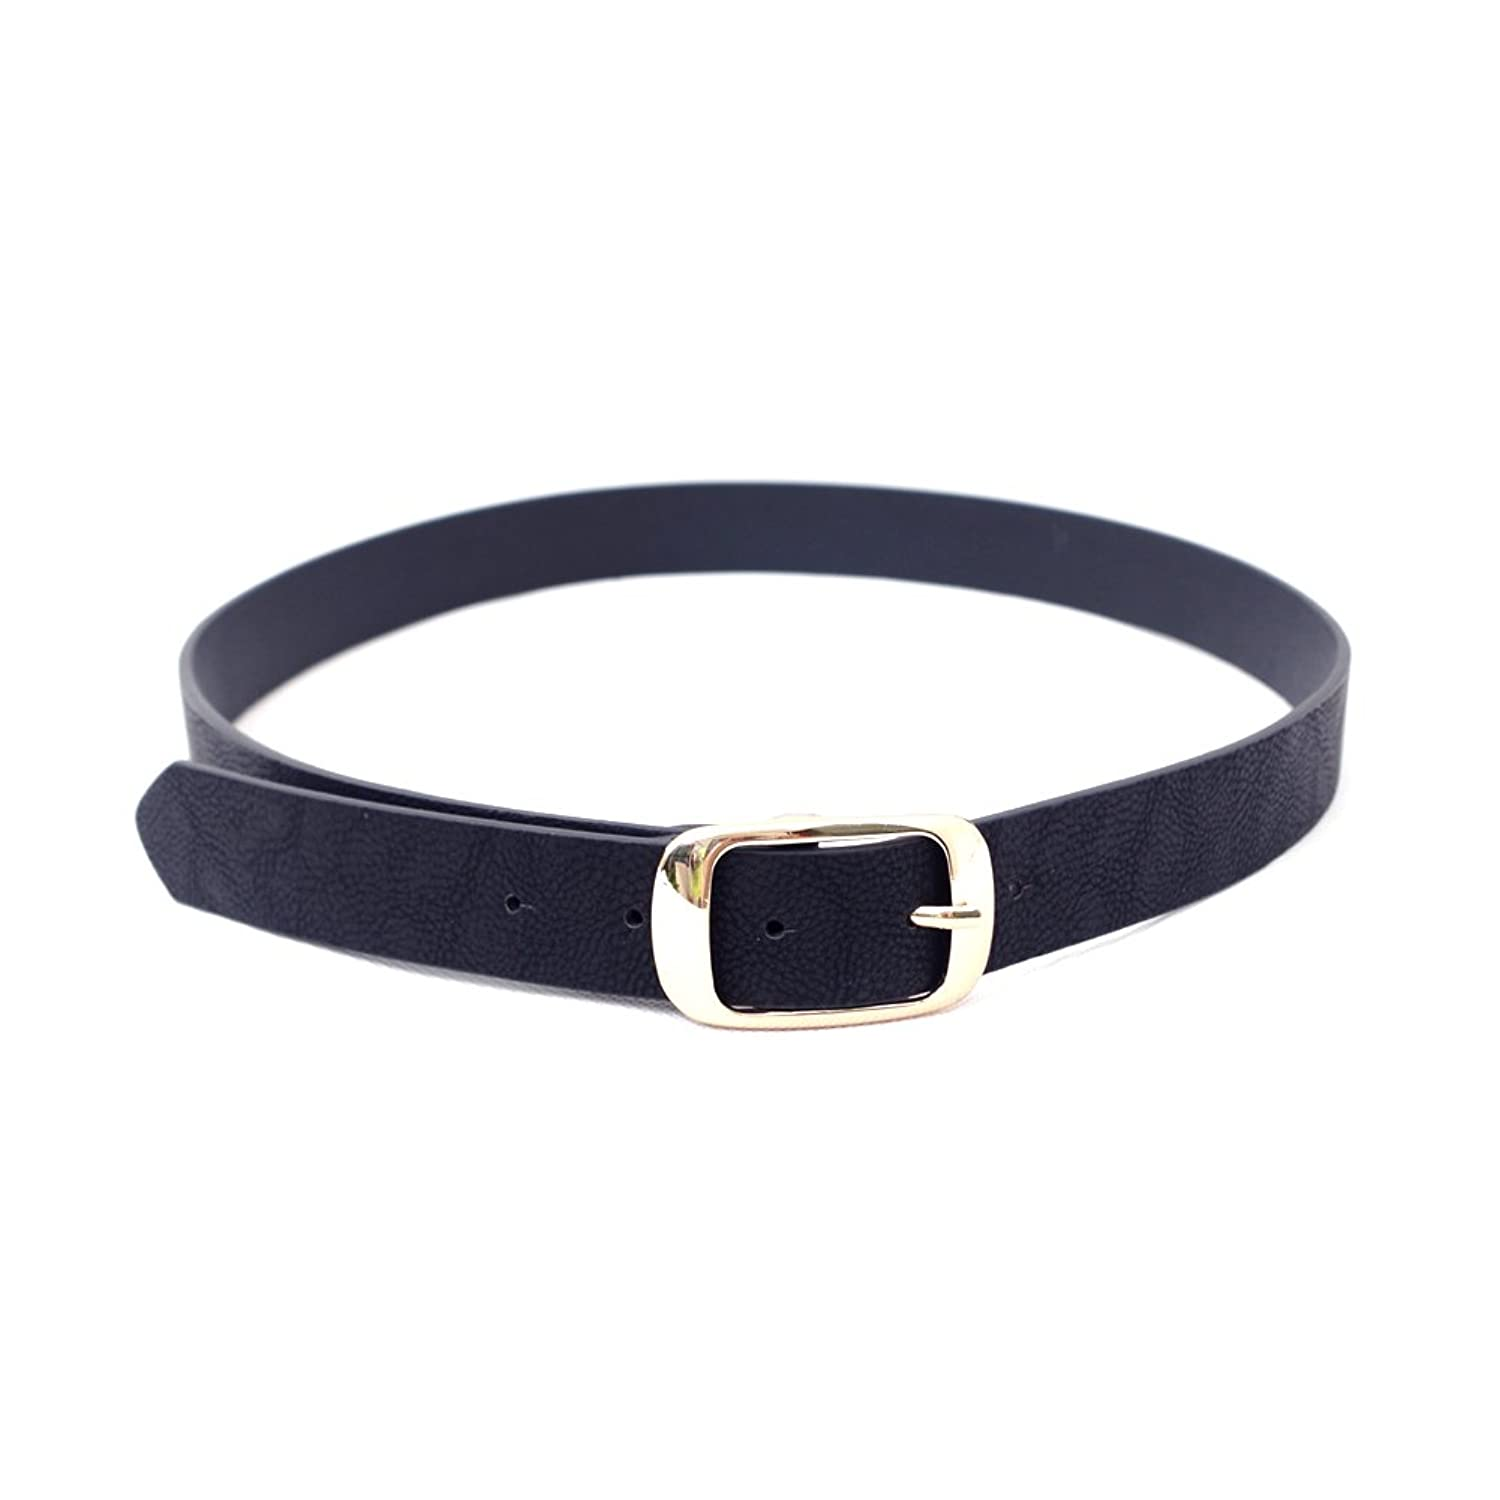 Maikun Women's Adjustable Solid Color Leather Belt with Pin Buckle